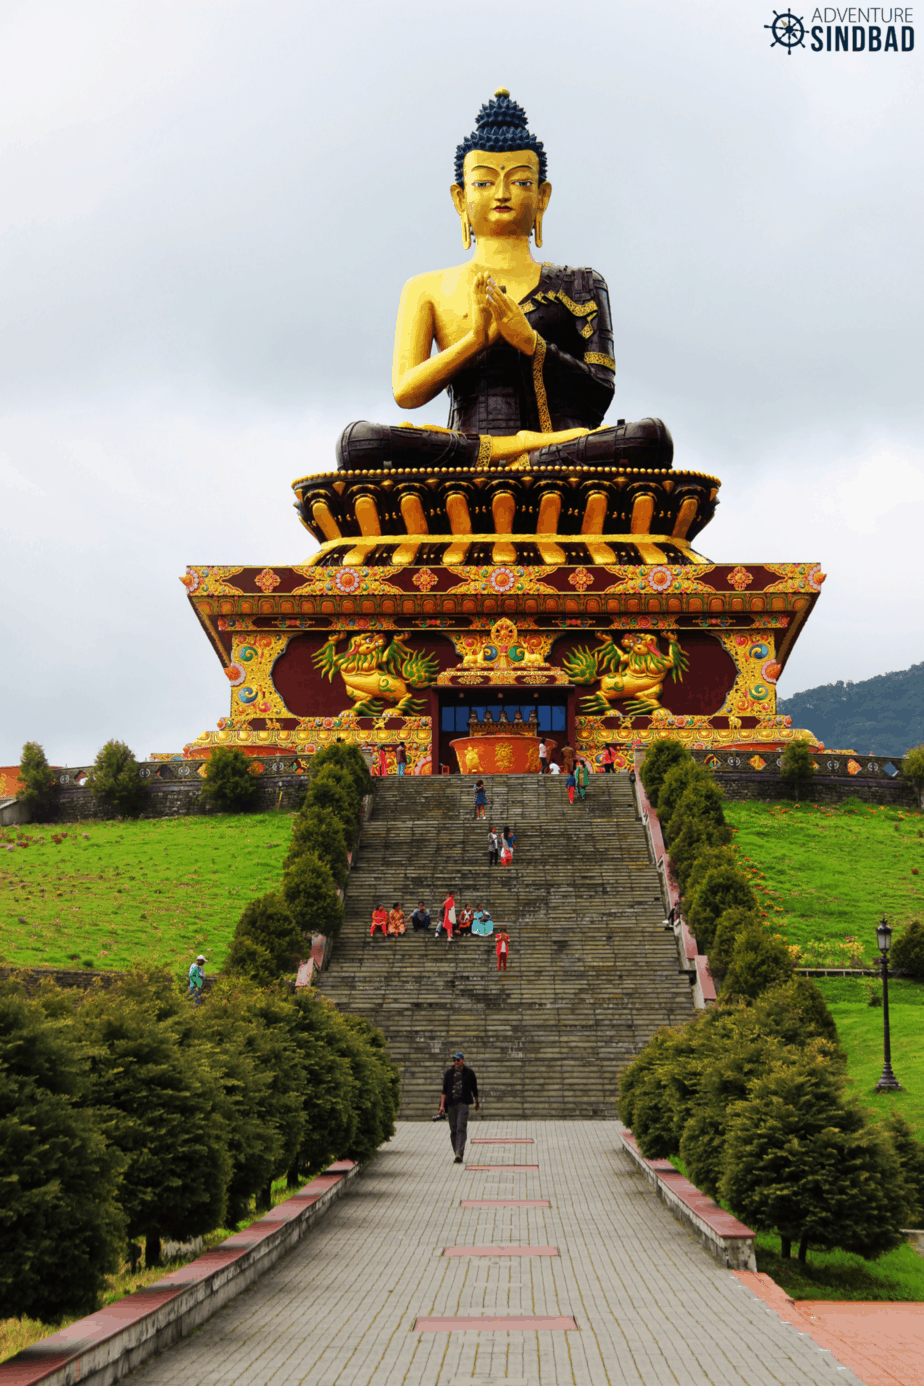 Sikkim Buddha Park at Ravangla in Sikkim